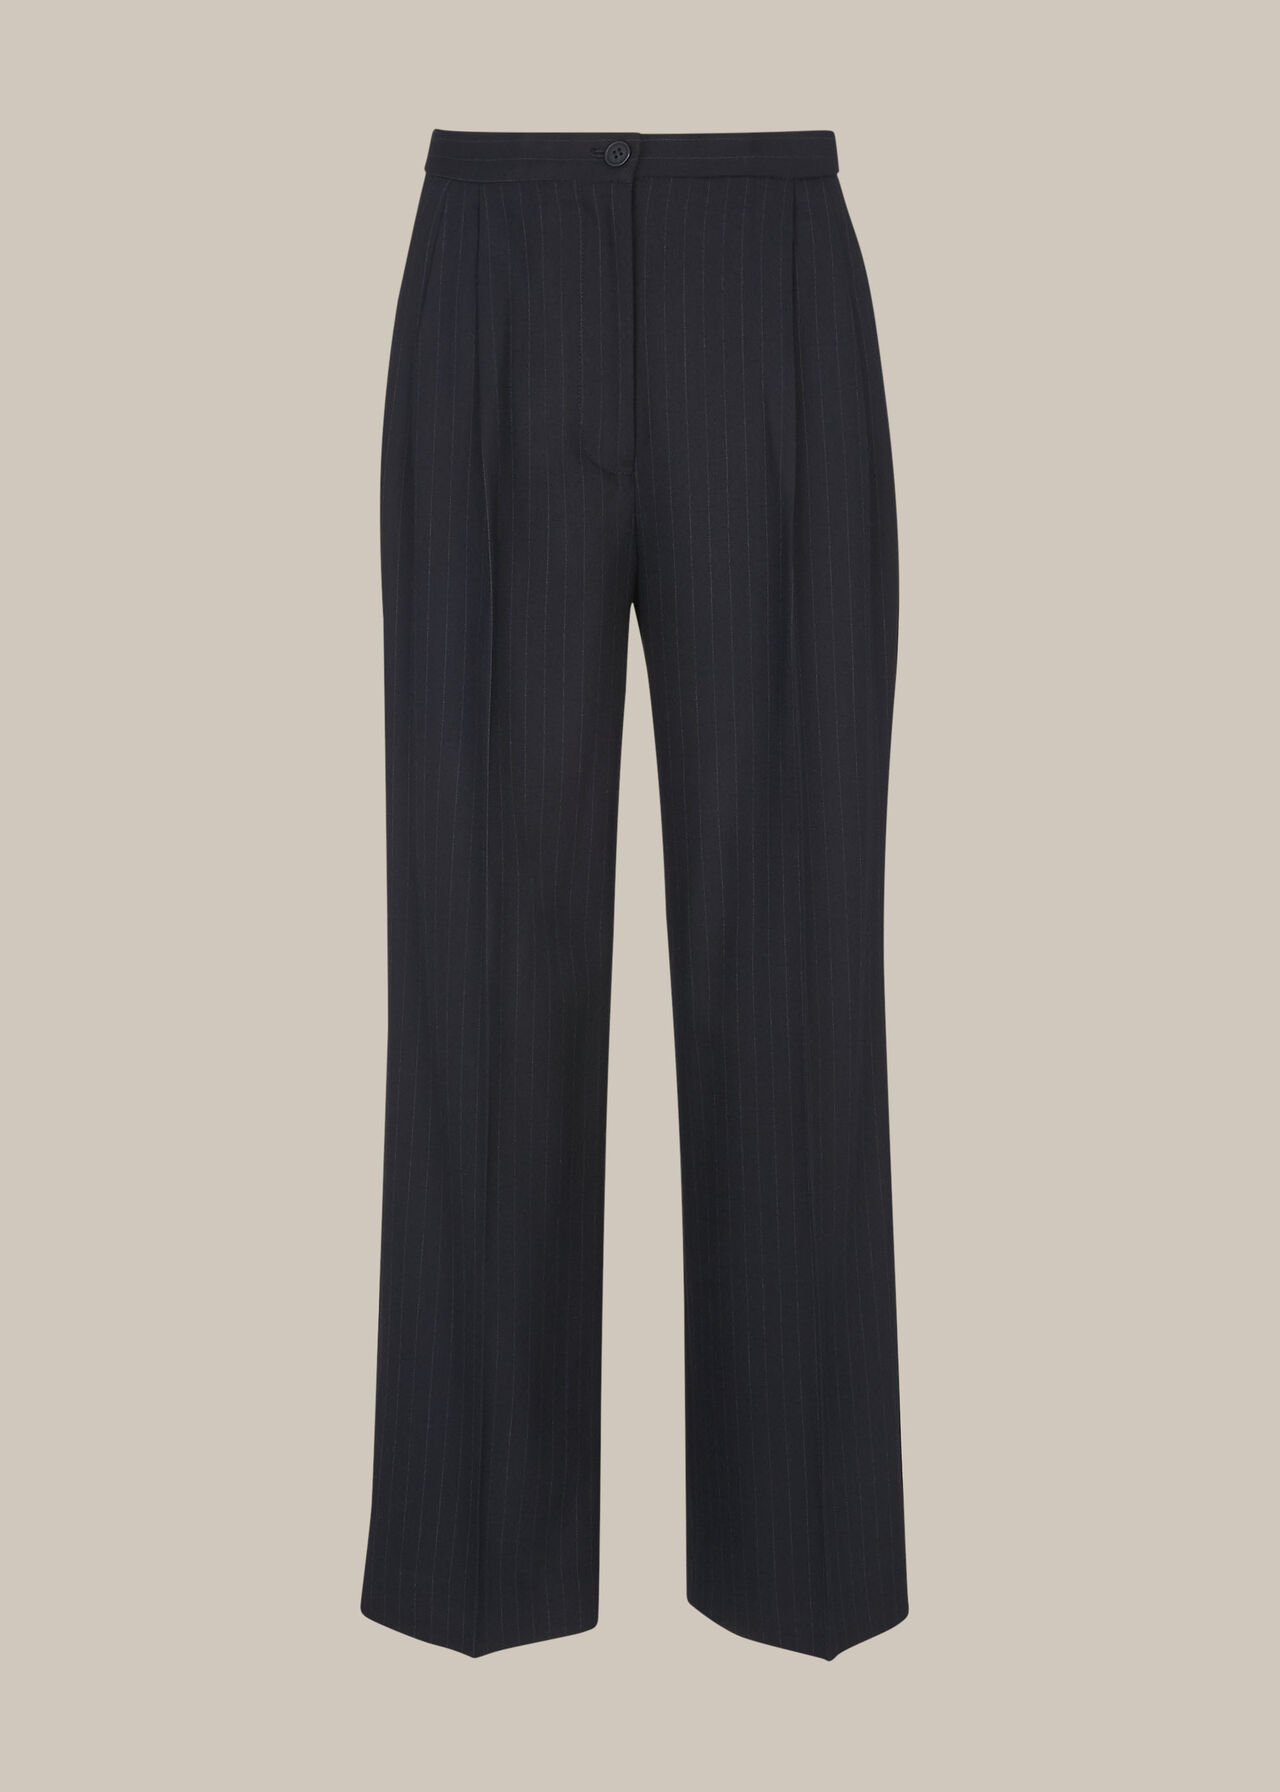 Pinstripe Full Length Trouser